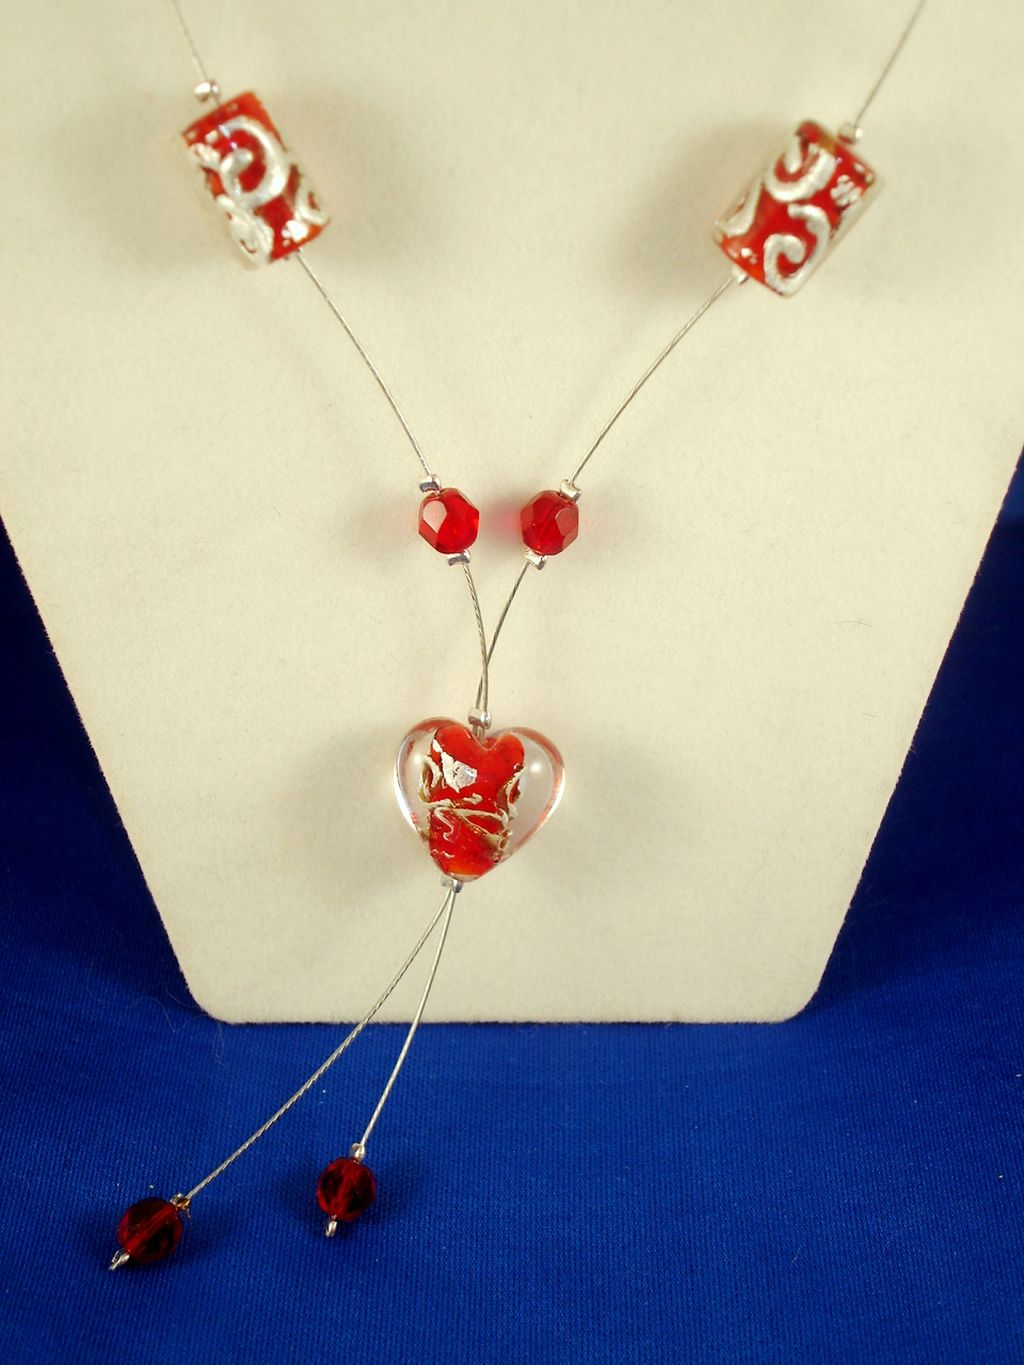 Red Heart Stained Glass Necklace, European Fashion Jewelry